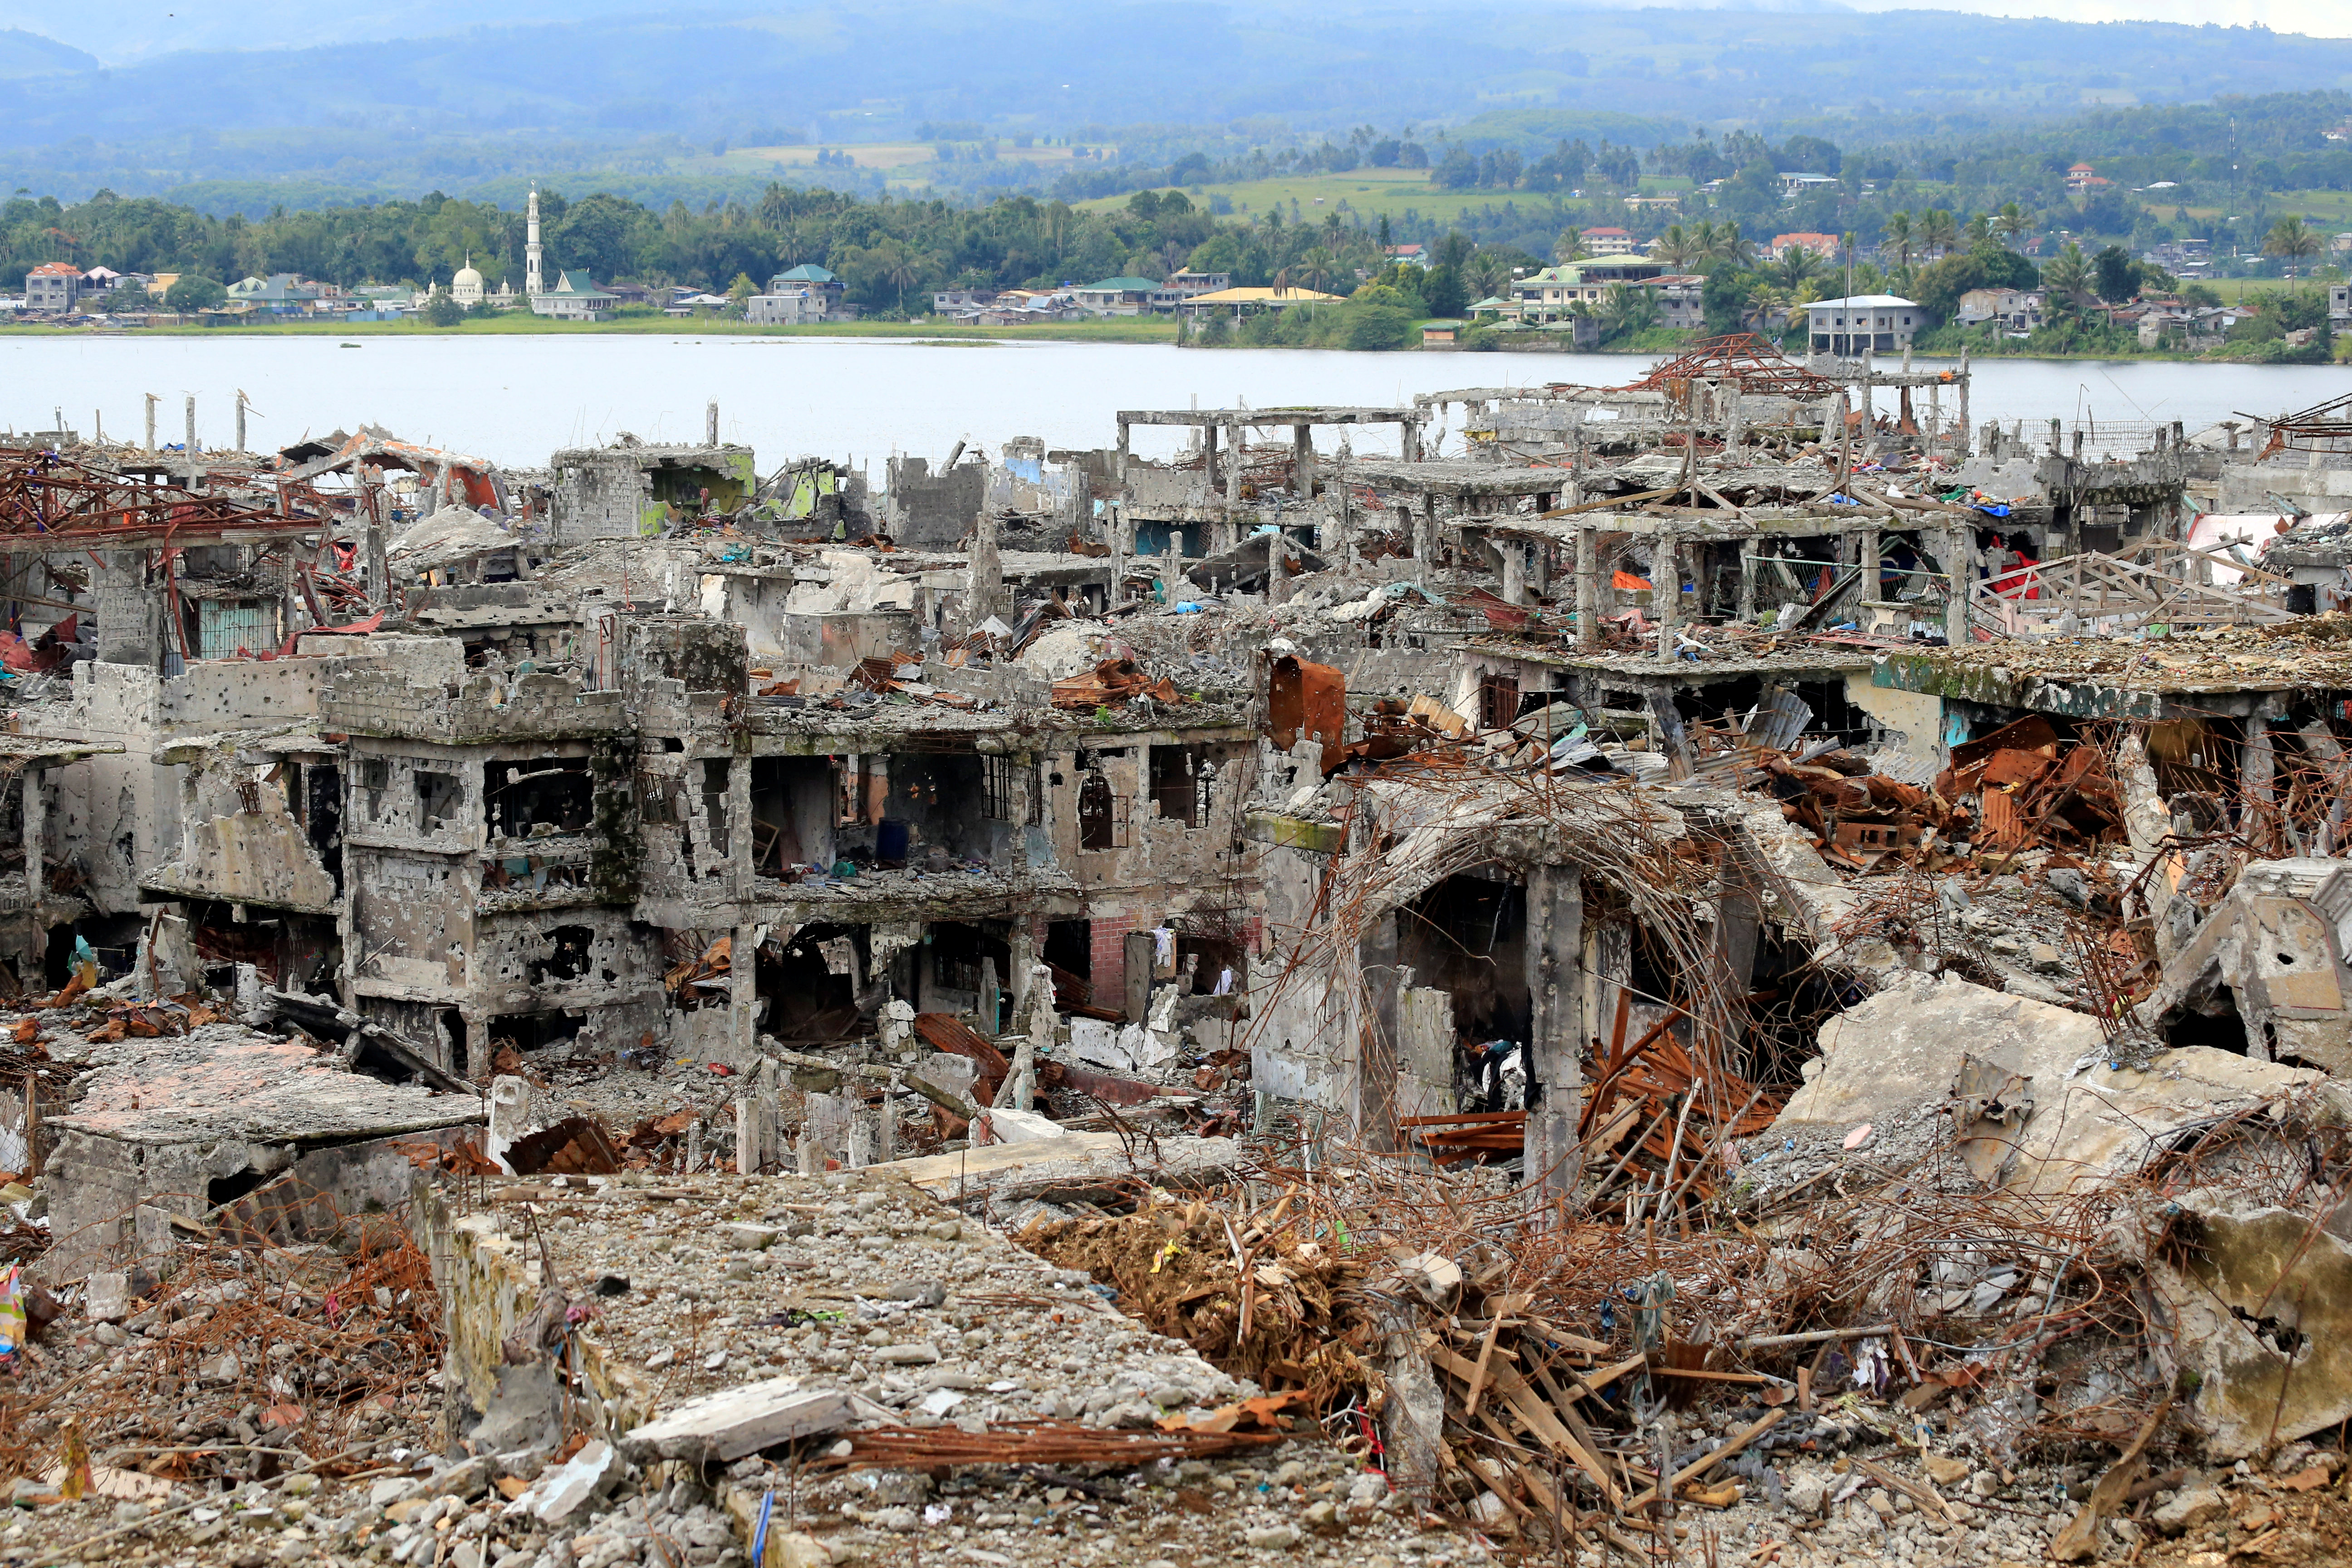 Damaged buildings and houses are seen in Marawi city, Philippines October 25, 2017.